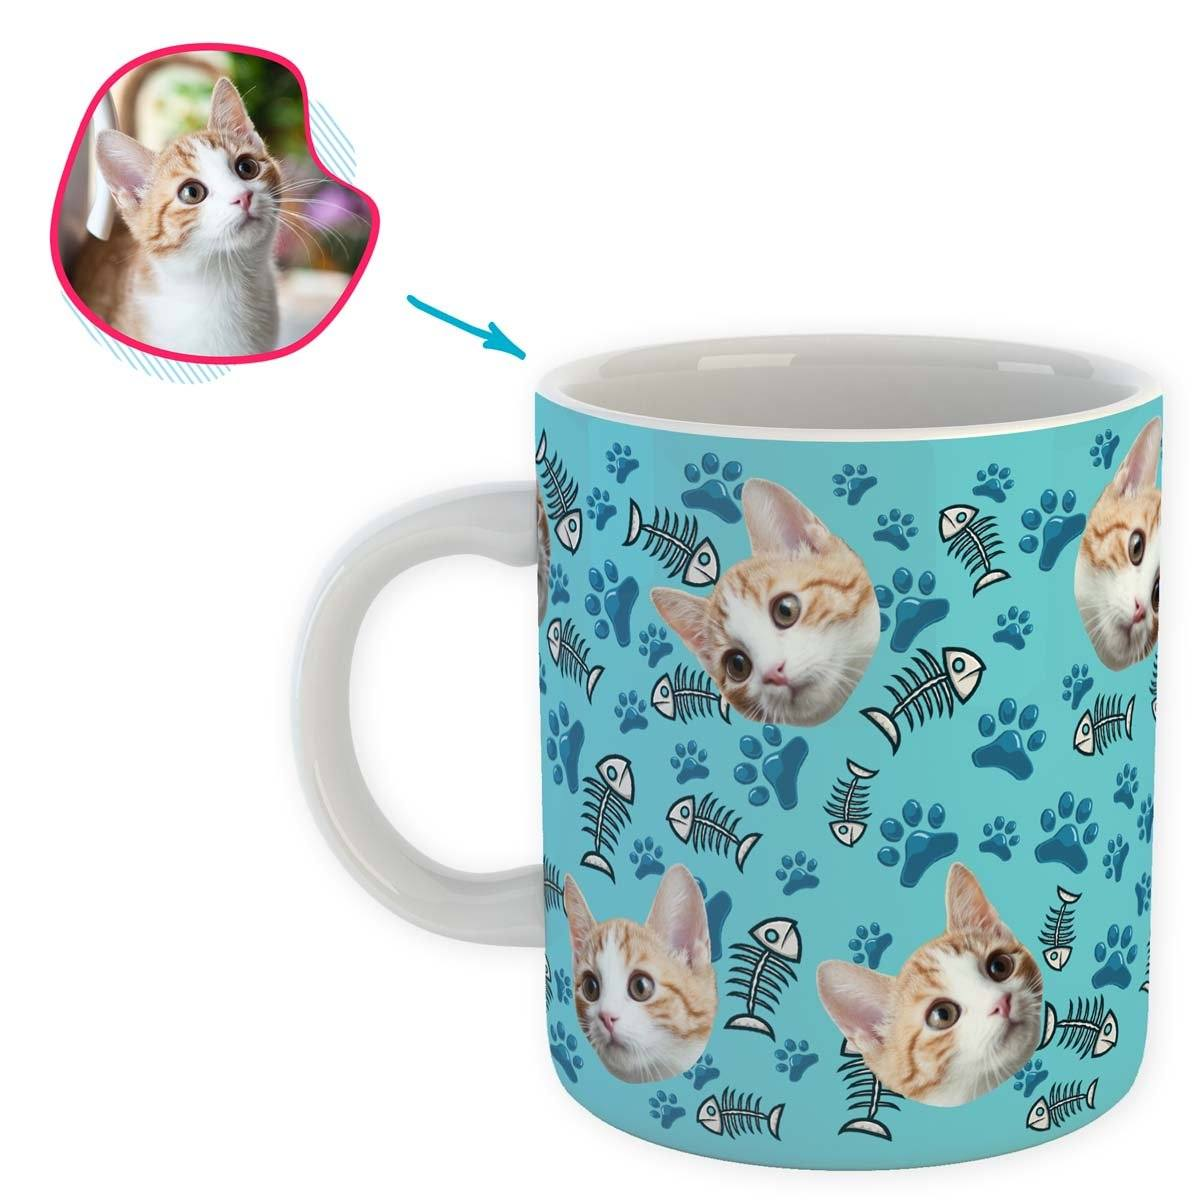 blue Cat mug personalized with photo of face printed on it